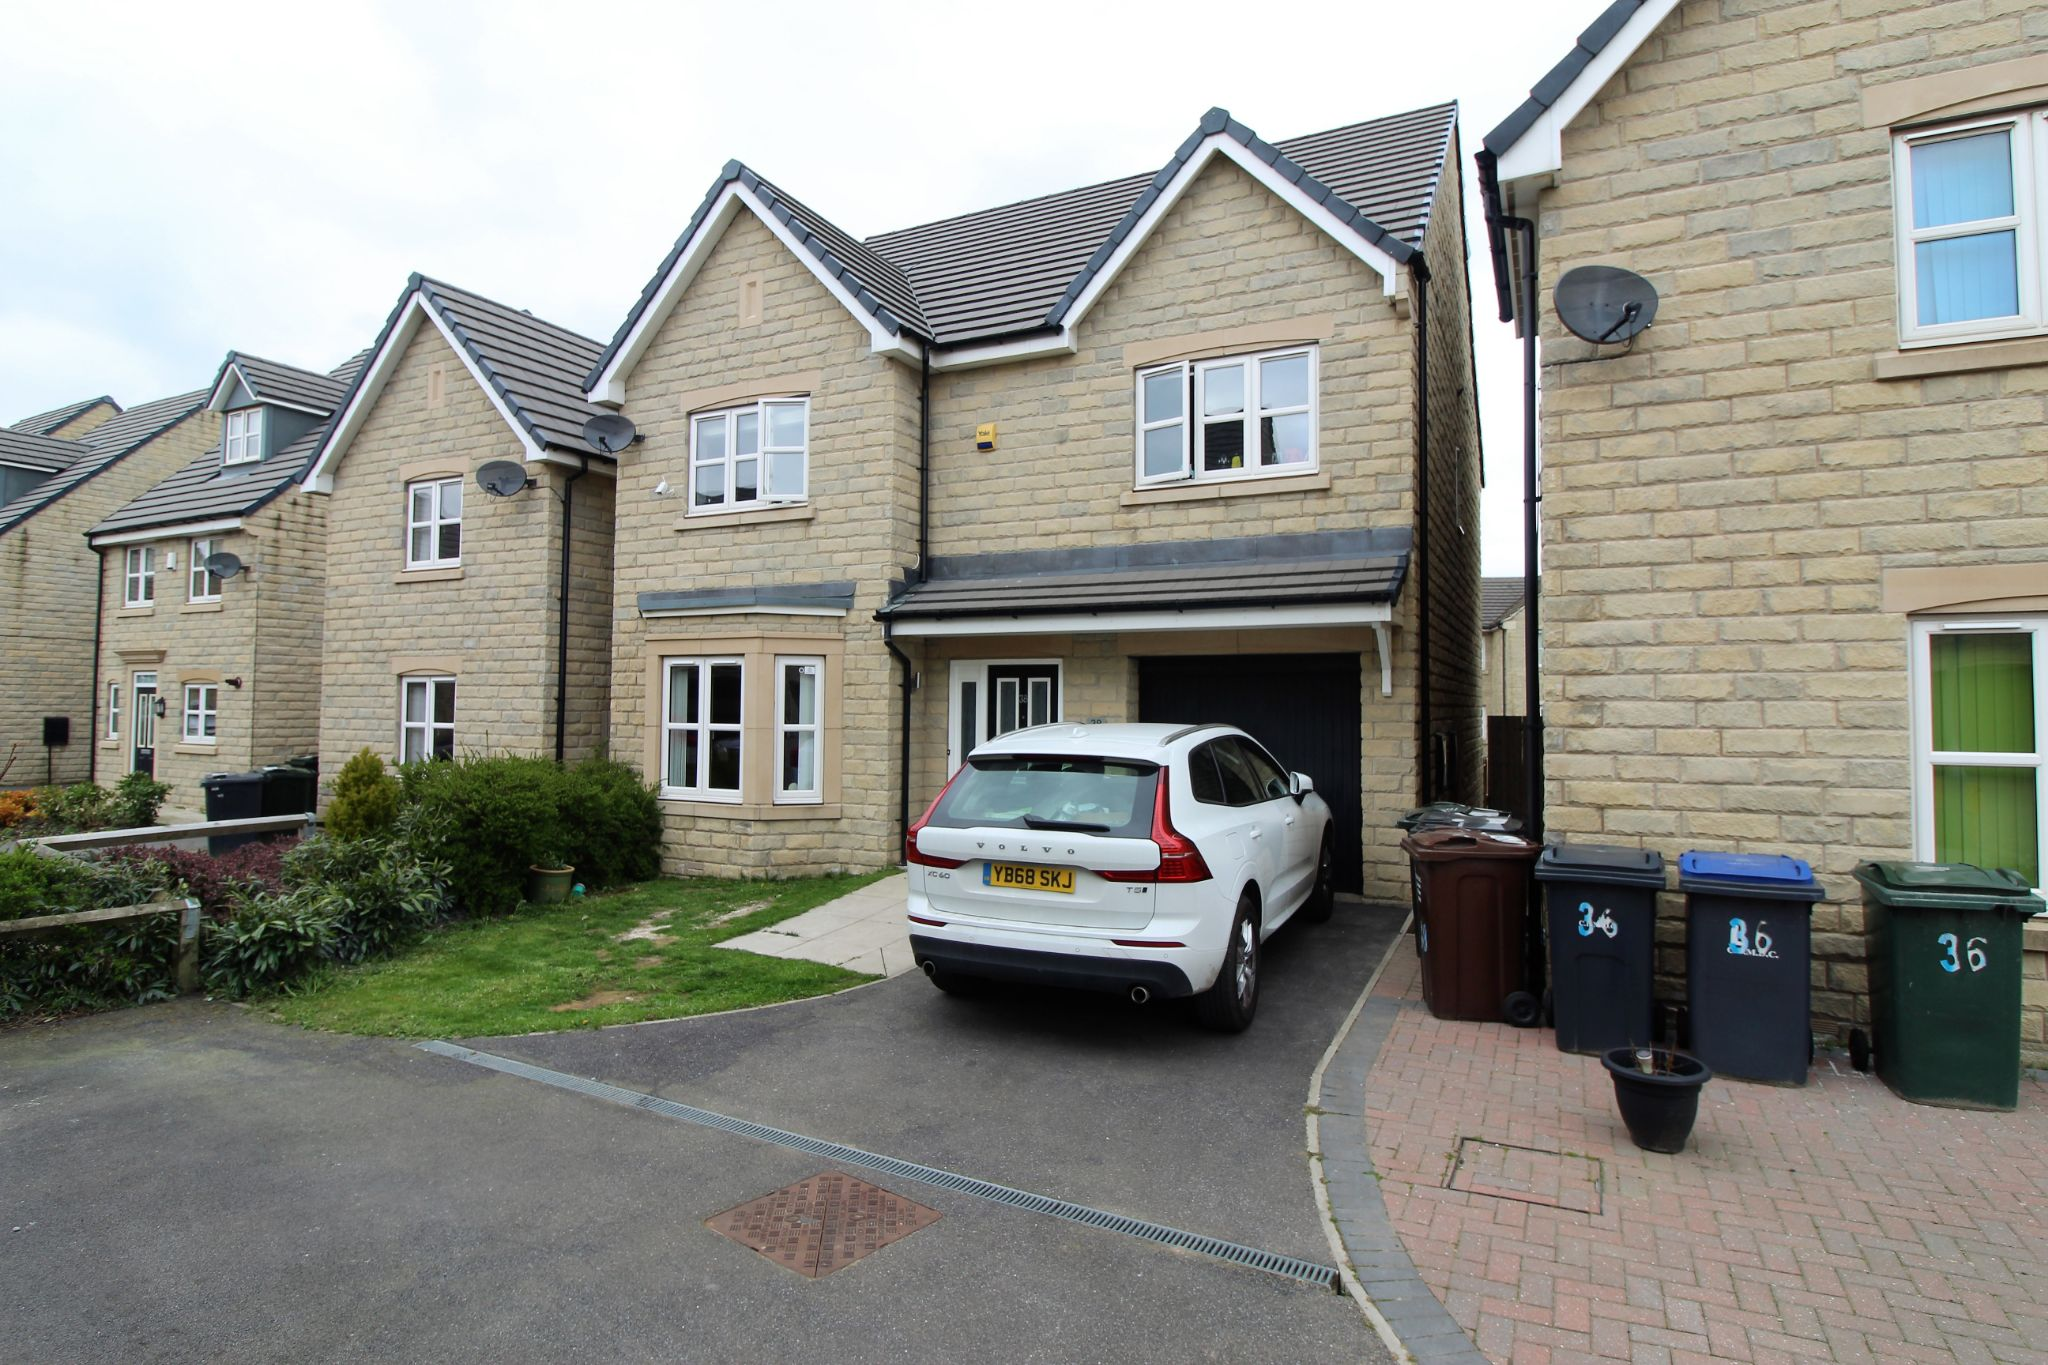 4 bedroom detached house For Sale in Bradford - Photograph 1